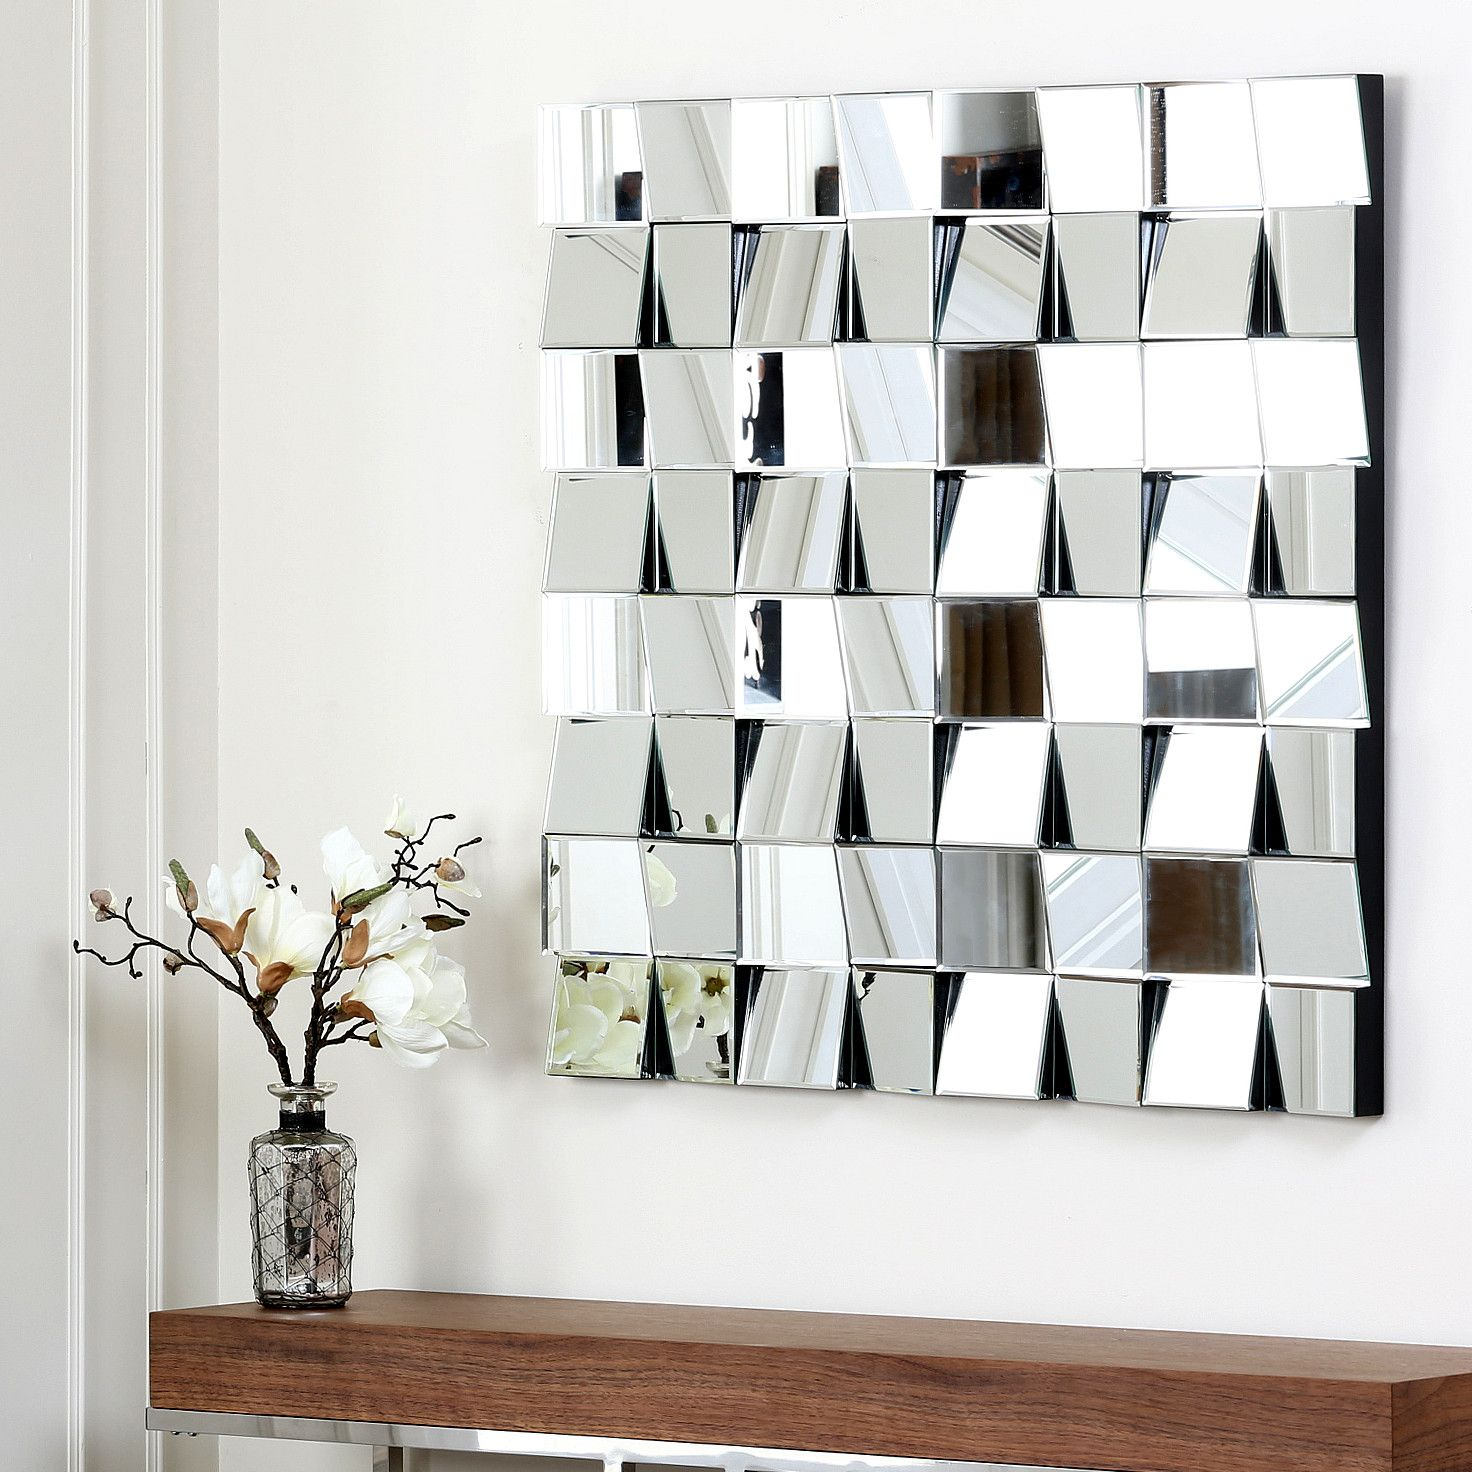 Abbyson Living Isabelle Wall Mirror | Decorating | Pinterest ...